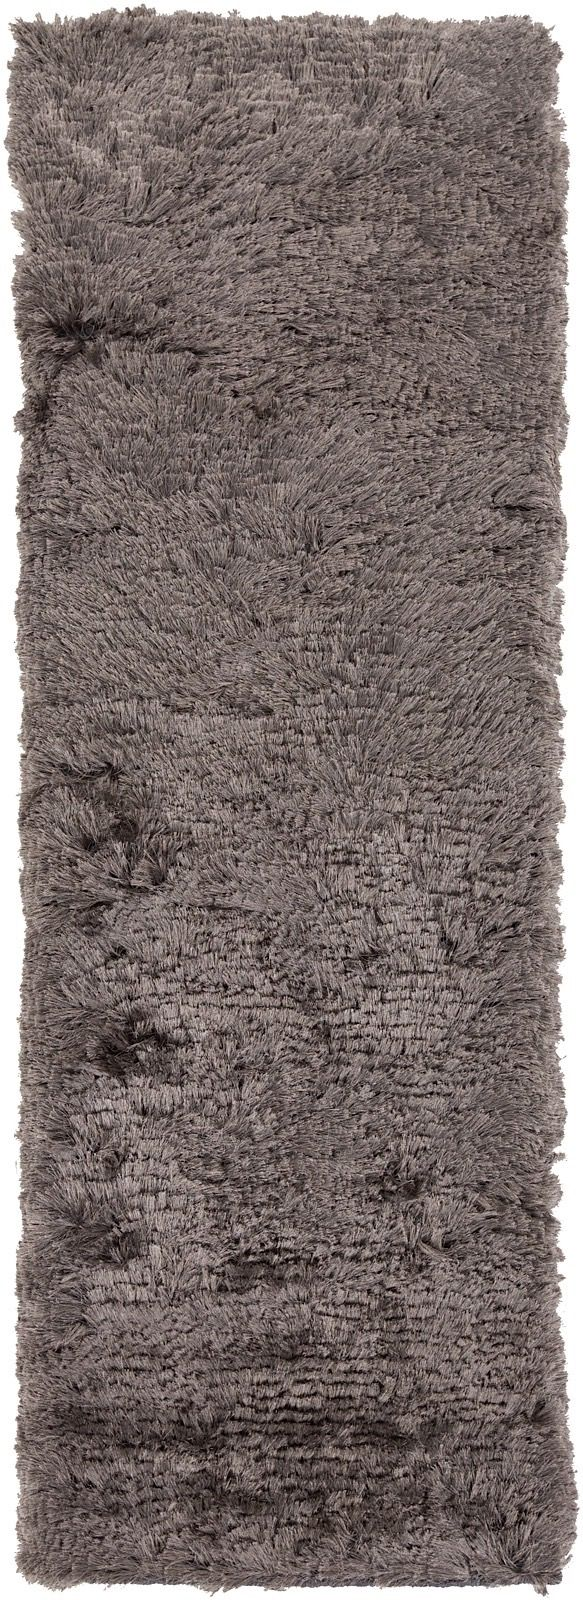 surya stealth shag area rug collection